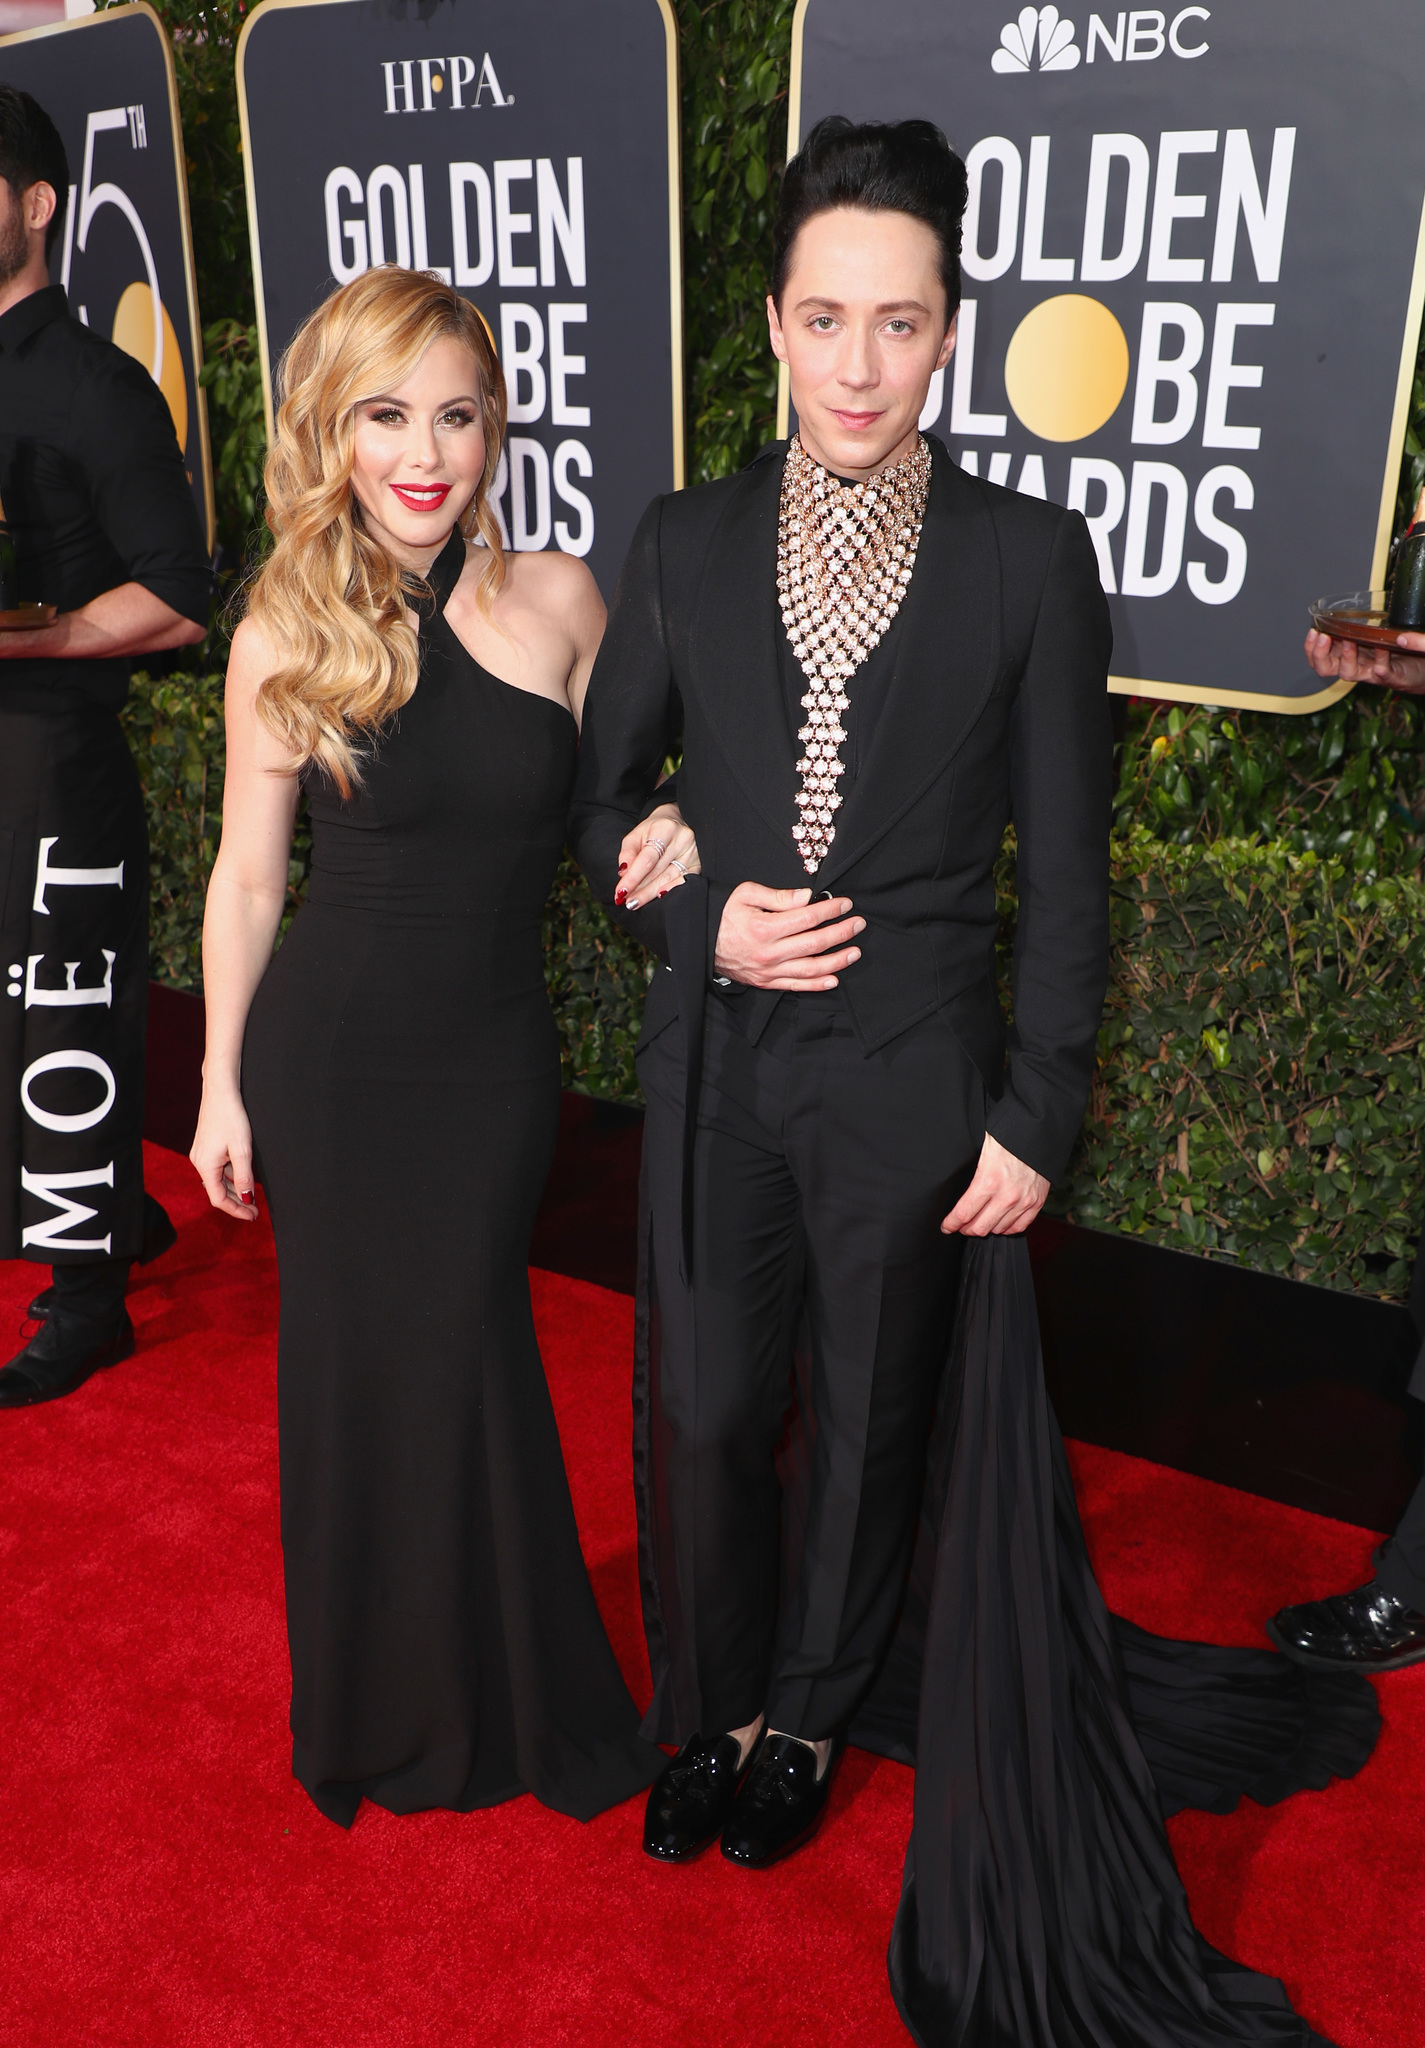 Tara Lipinski and Johnny Weir at an event for The 75th Annual Golden Globe Awards 2018 (2018)